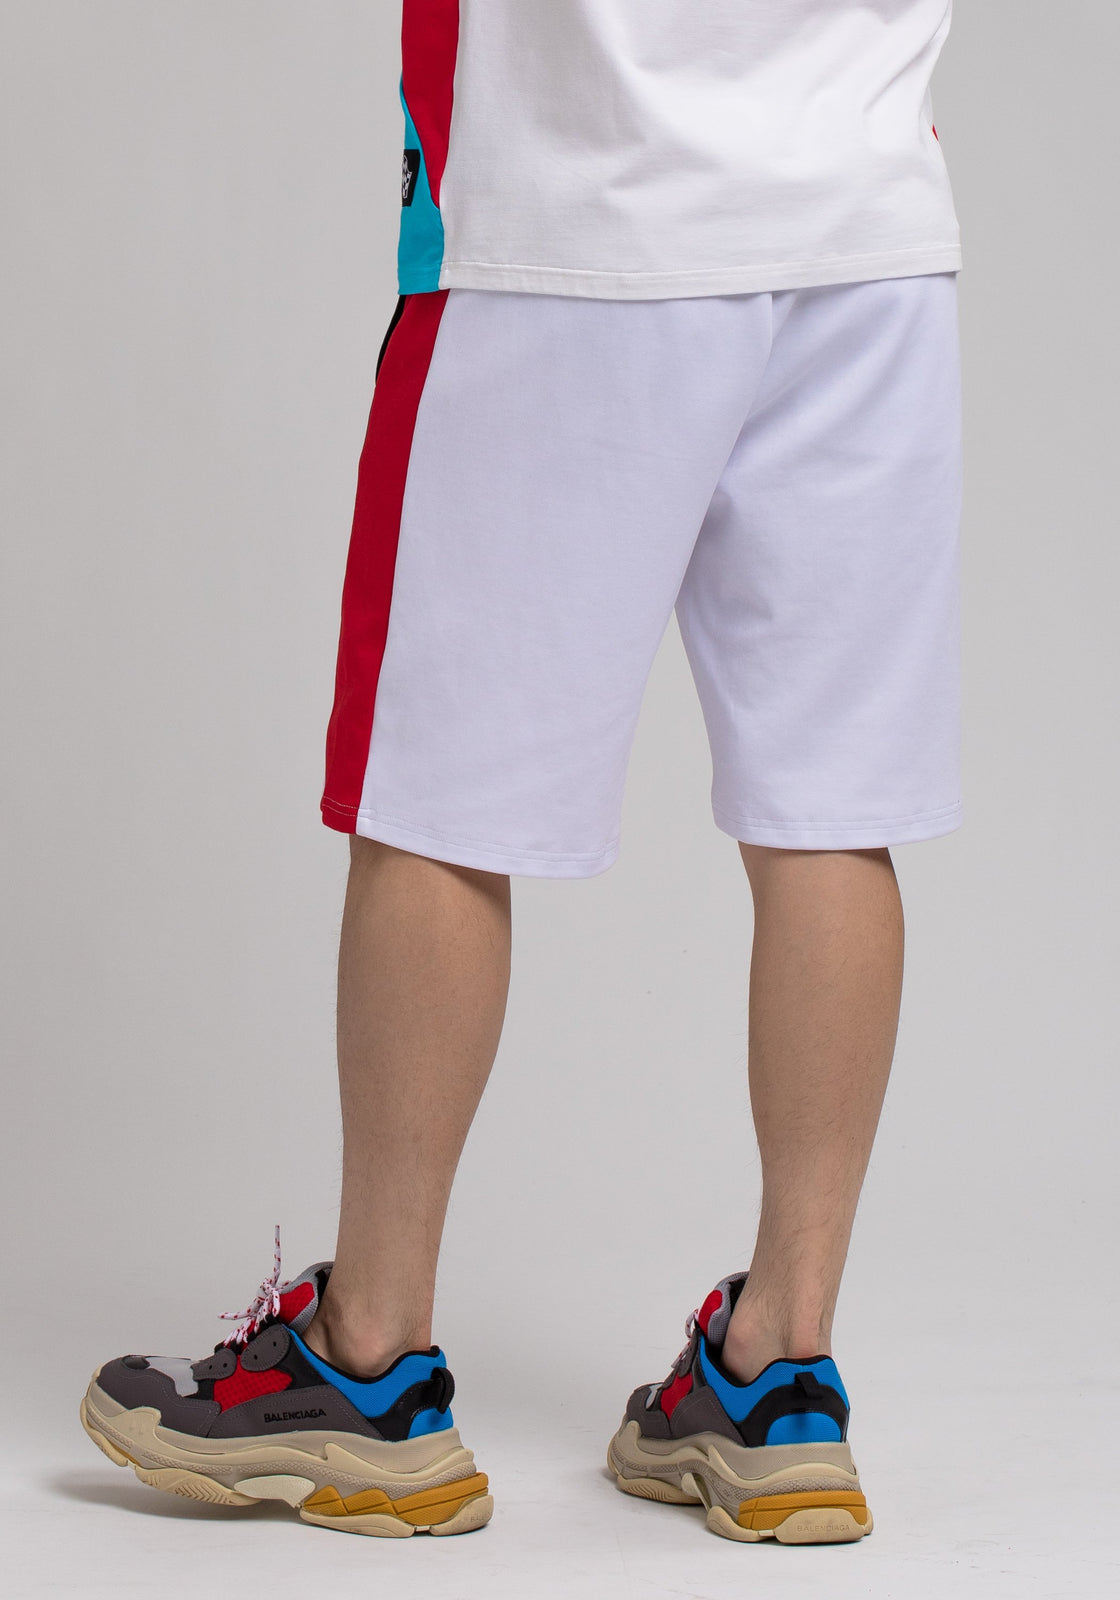 Racing Team Shorts - Color: White